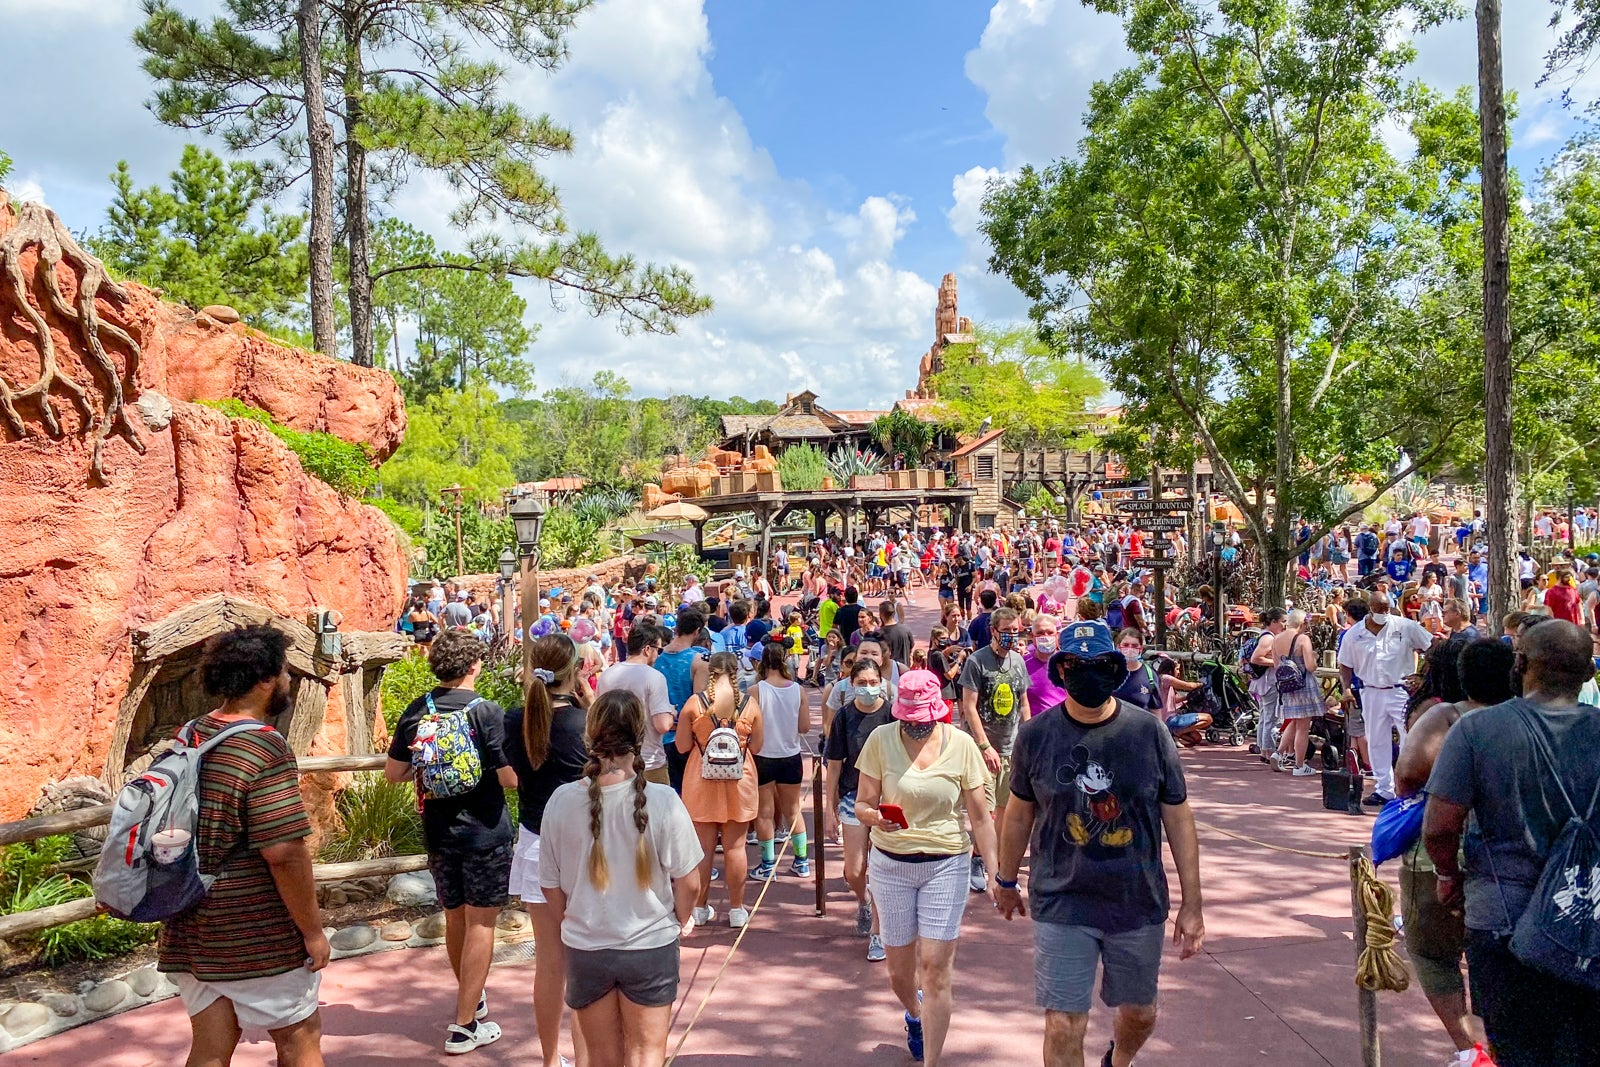 COVID spikes and massive crowds: Why you might want to rethink that Florida theme park trip - The Points Guy